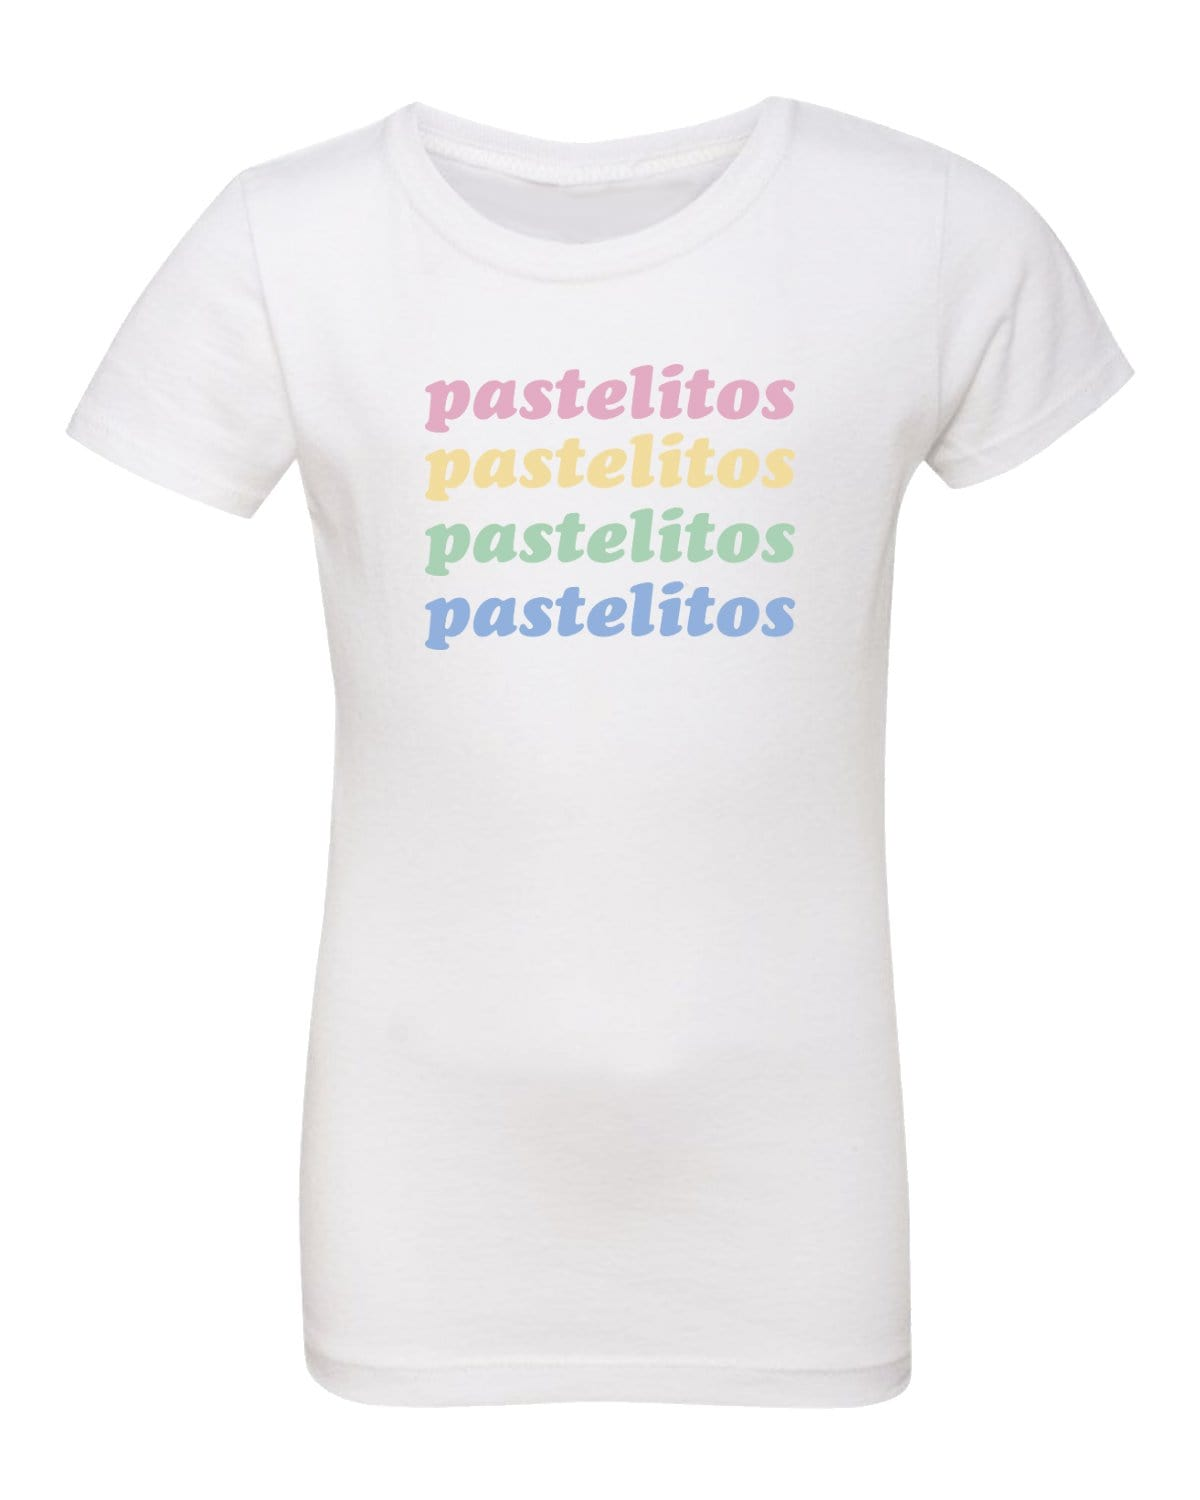 Pastelitos-Tee-Girls.jpg